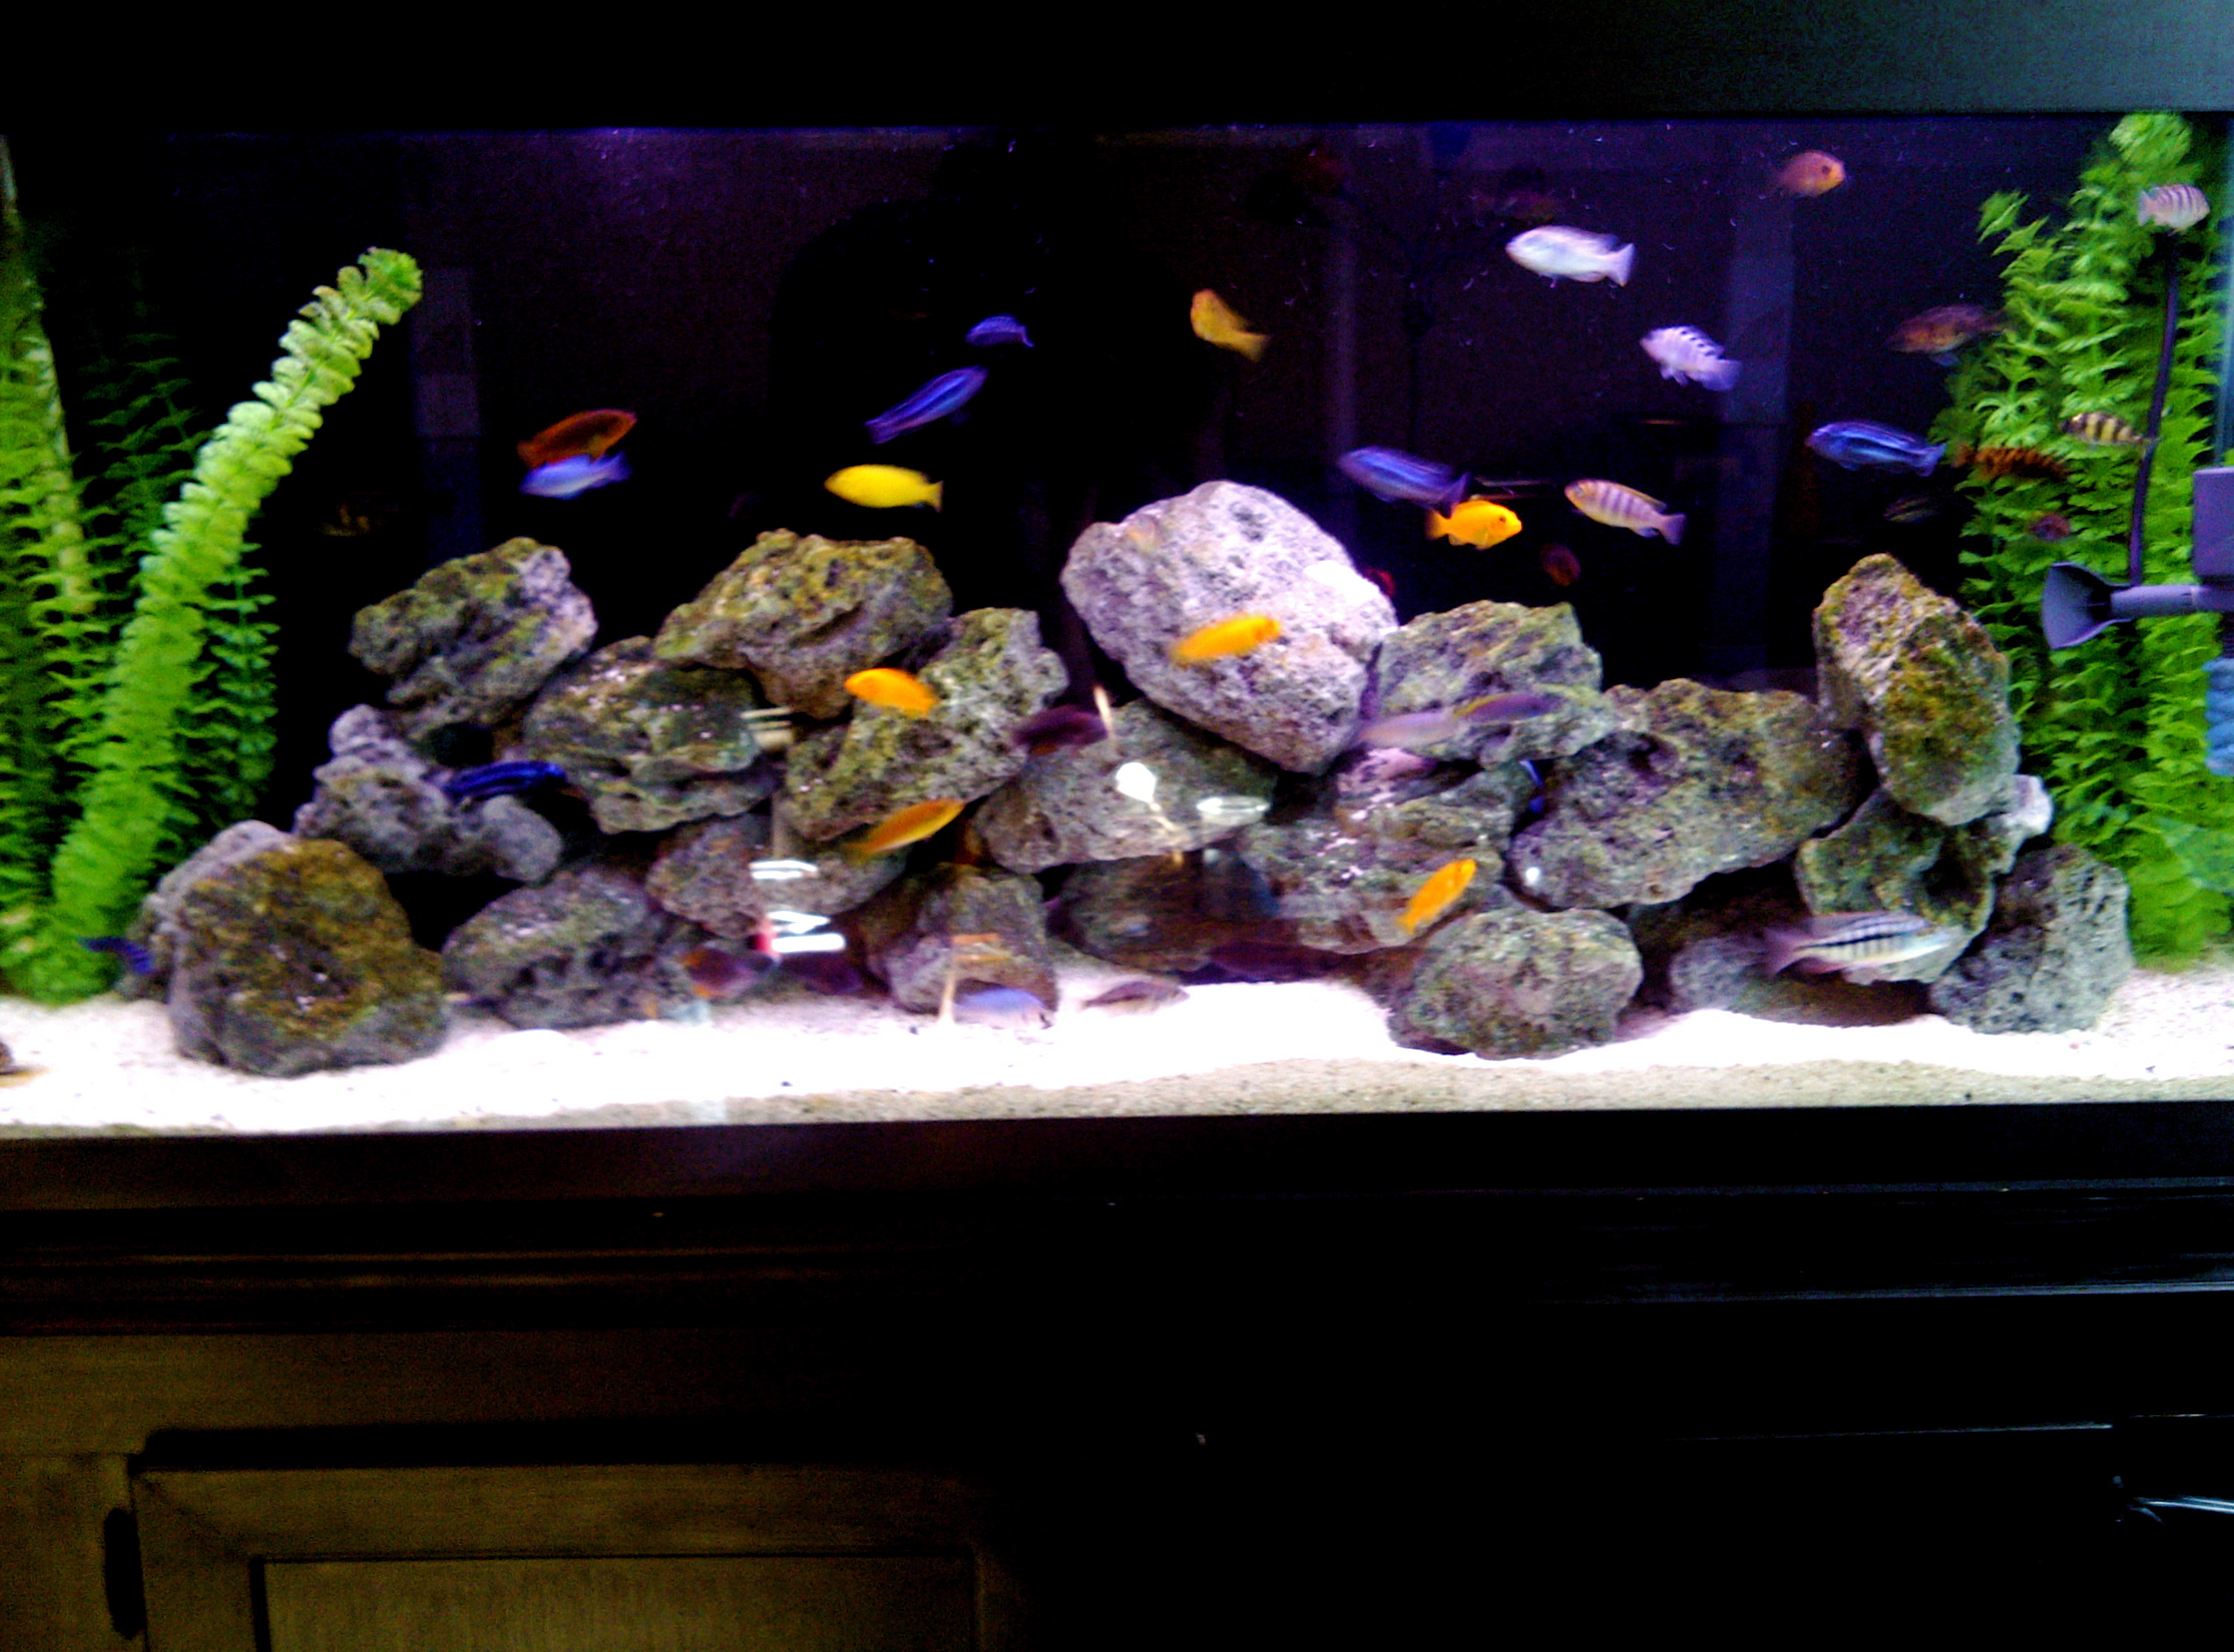 Viewtopic besides Underwater galleries besides Cichlids Fish further 55 gallon african cichlids 2 also Reducing Aggression In The Cichlid Aquarium. on oscar cichlid tank setup